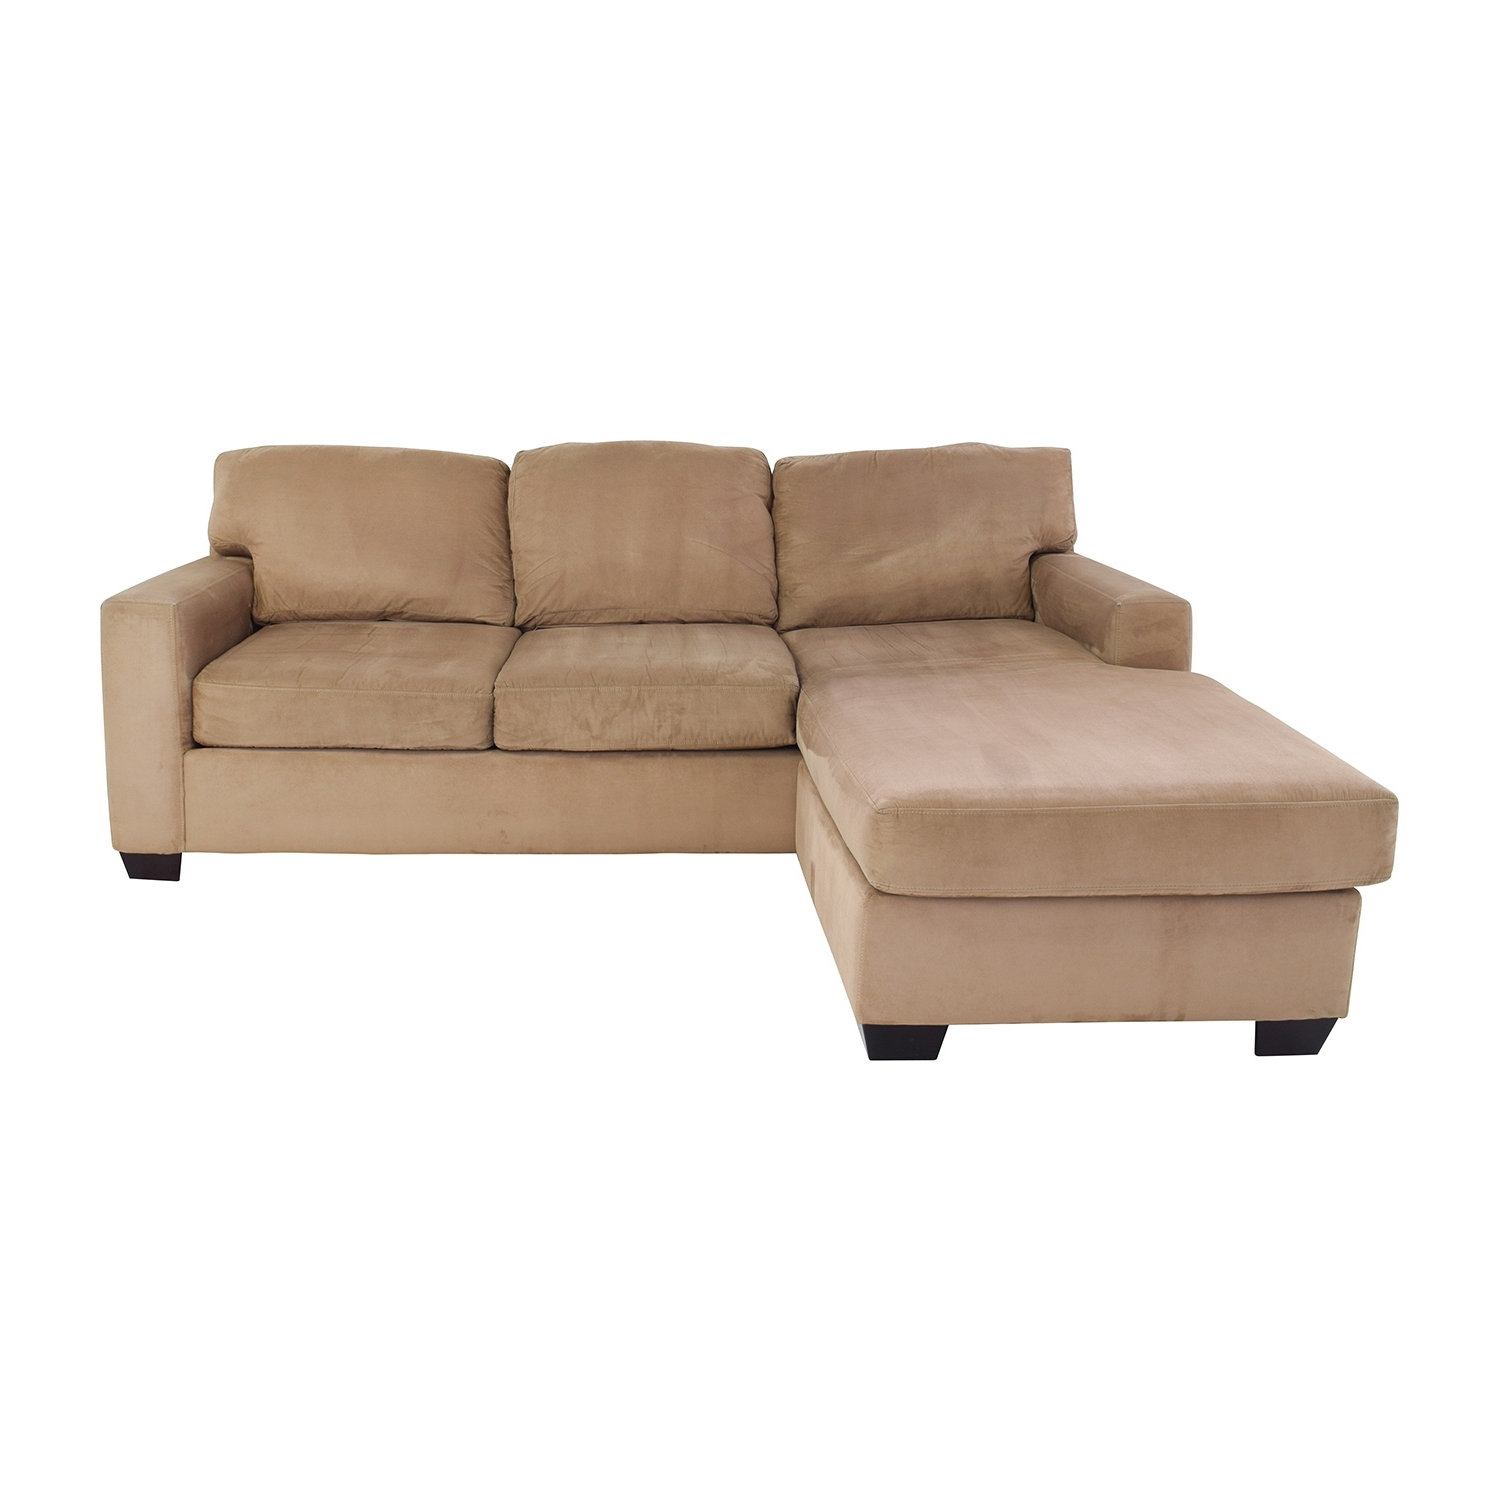 [%75% Off – Max Home Max Home Tan Sectional Chaise Sofa / Sofas Inside Widely Used Chaise Sofas|Chaise Sofas Throughout Most Recent 75% Off – Max Home Max Home Tan Sectional Chaise Sofa / Sofas|Most Popular Chaise Sofas With Regard To 75% Off – Max Home Max Home Tan Sectional Chaise Sofa / Sofas|Most Recently Released 75% Off – Max Home Max Home Tan Sectional Chaise Sofa / Sofas Intended For Chaise Sofas%] (View 1 of 15)